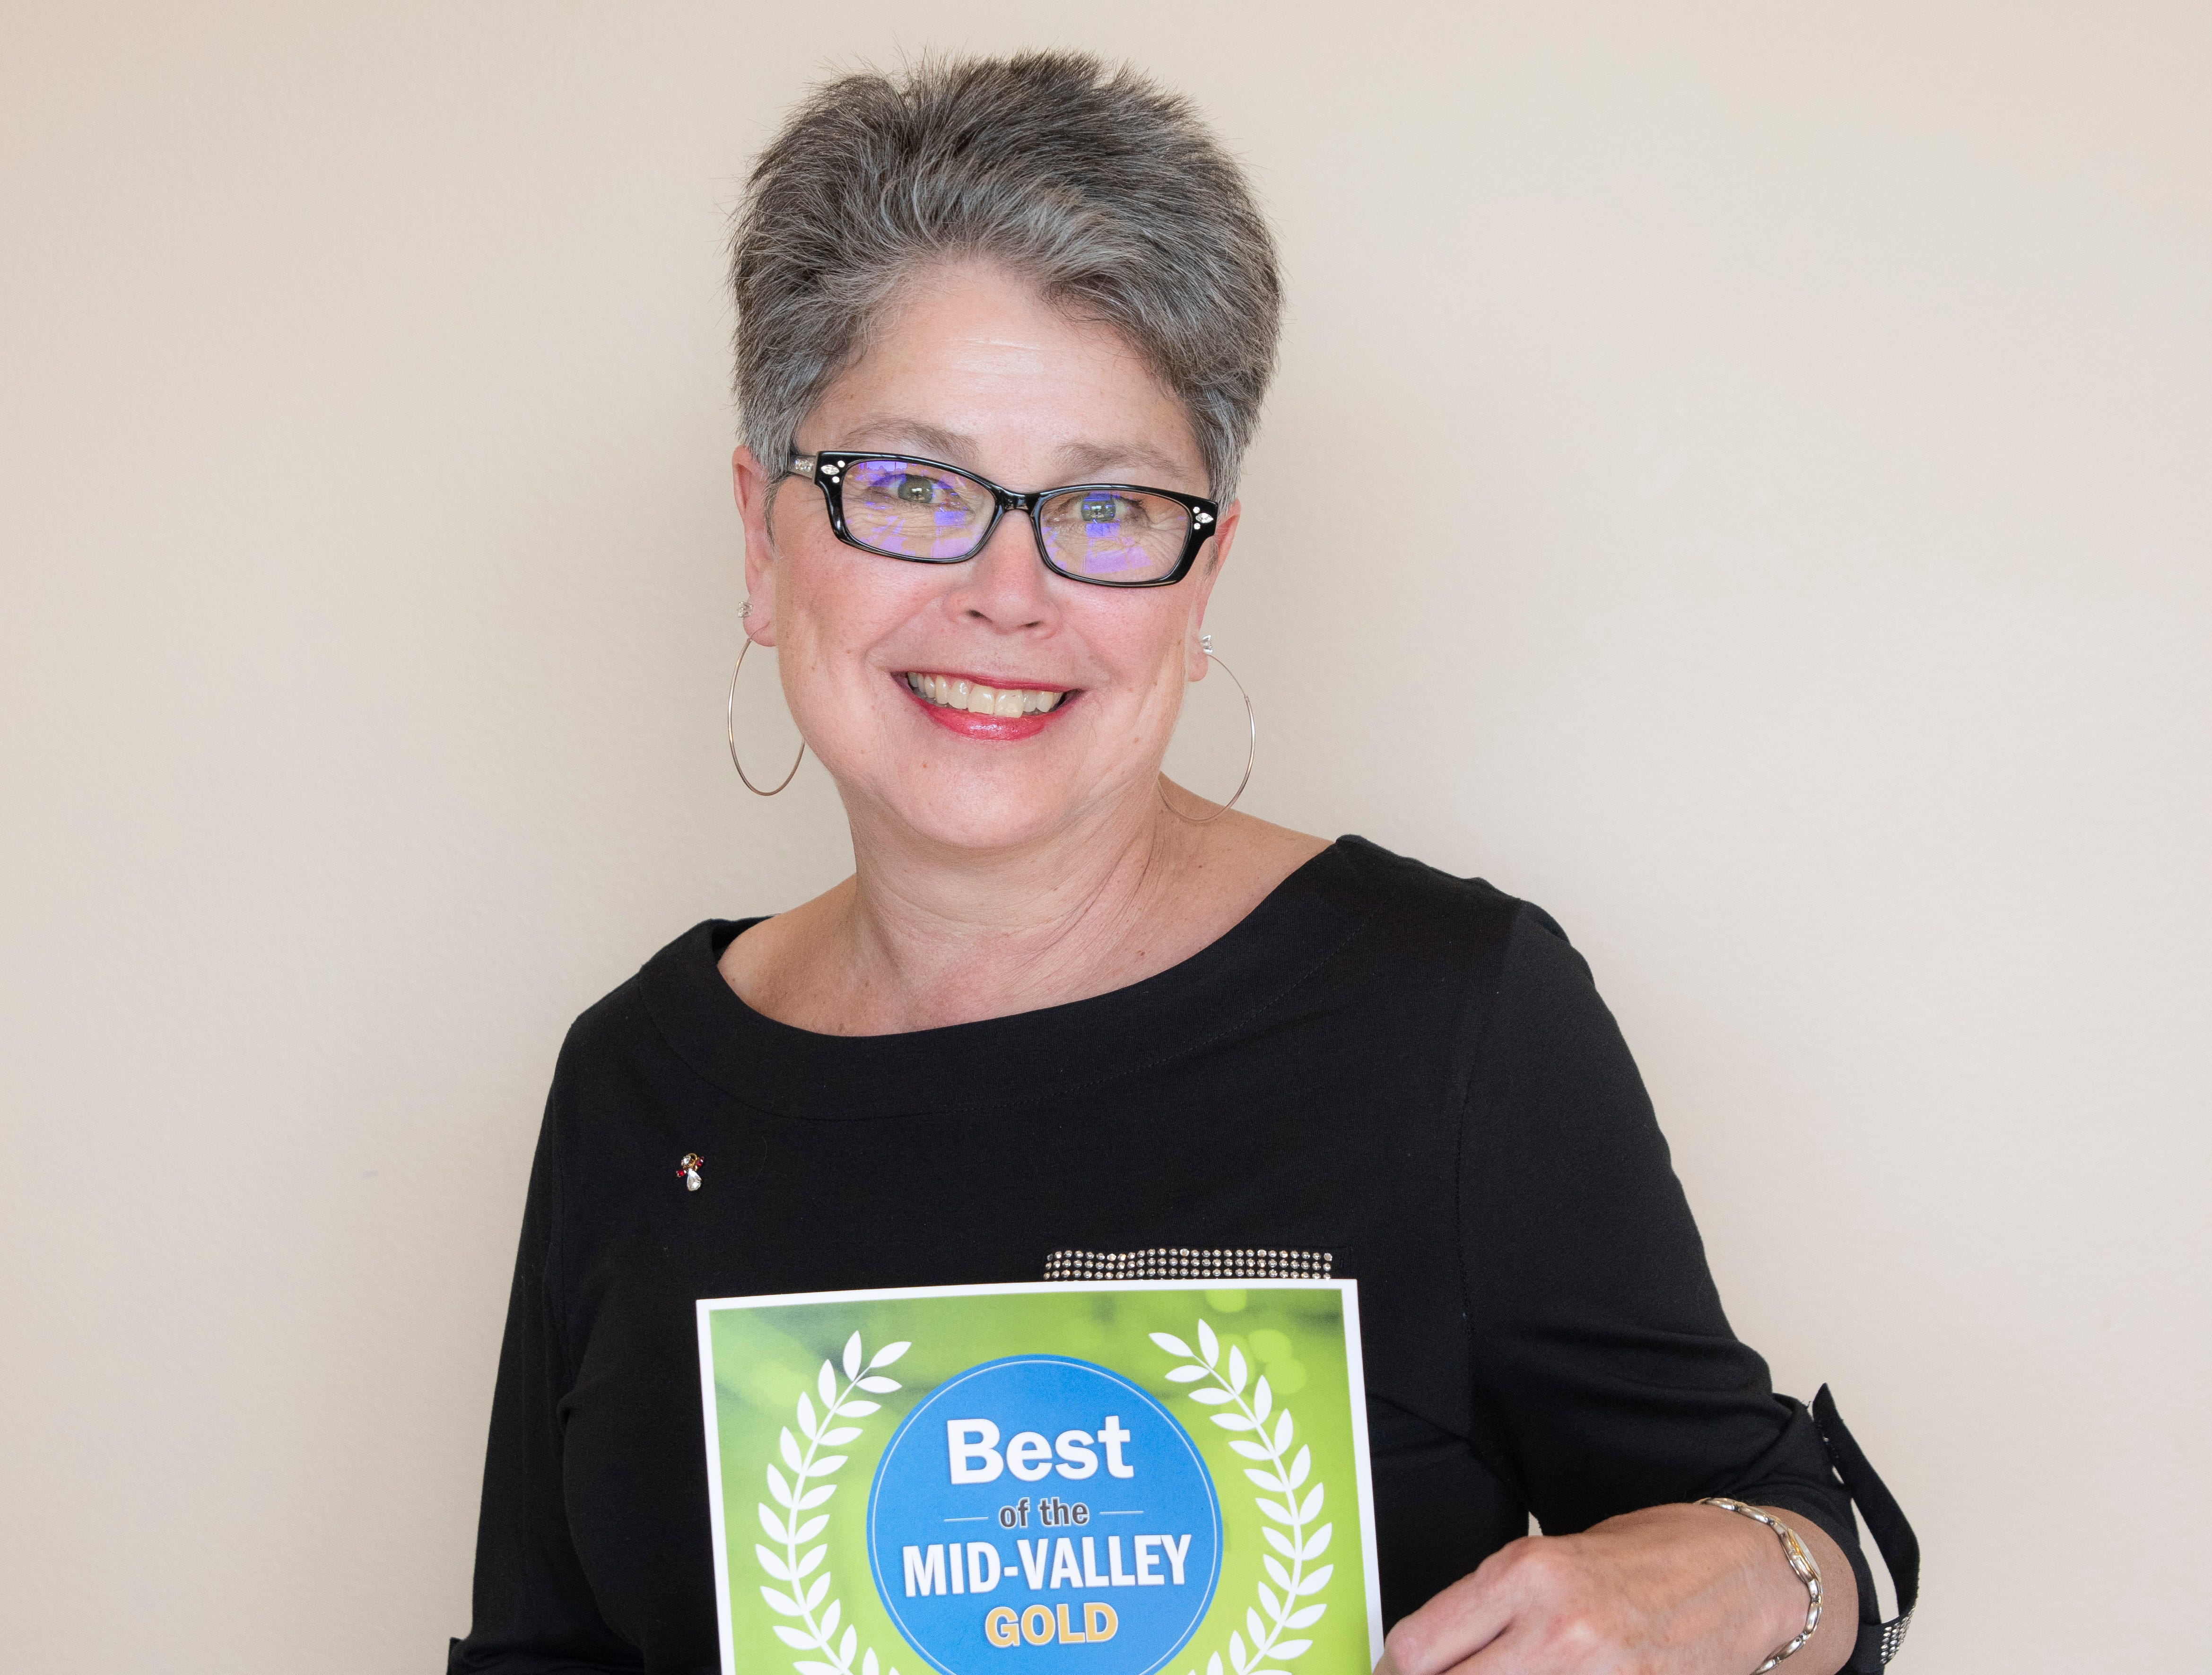 Rags to Riches won gold for Best Consignment/Thriftstore in the 2019 Best of the Mid-Valley.